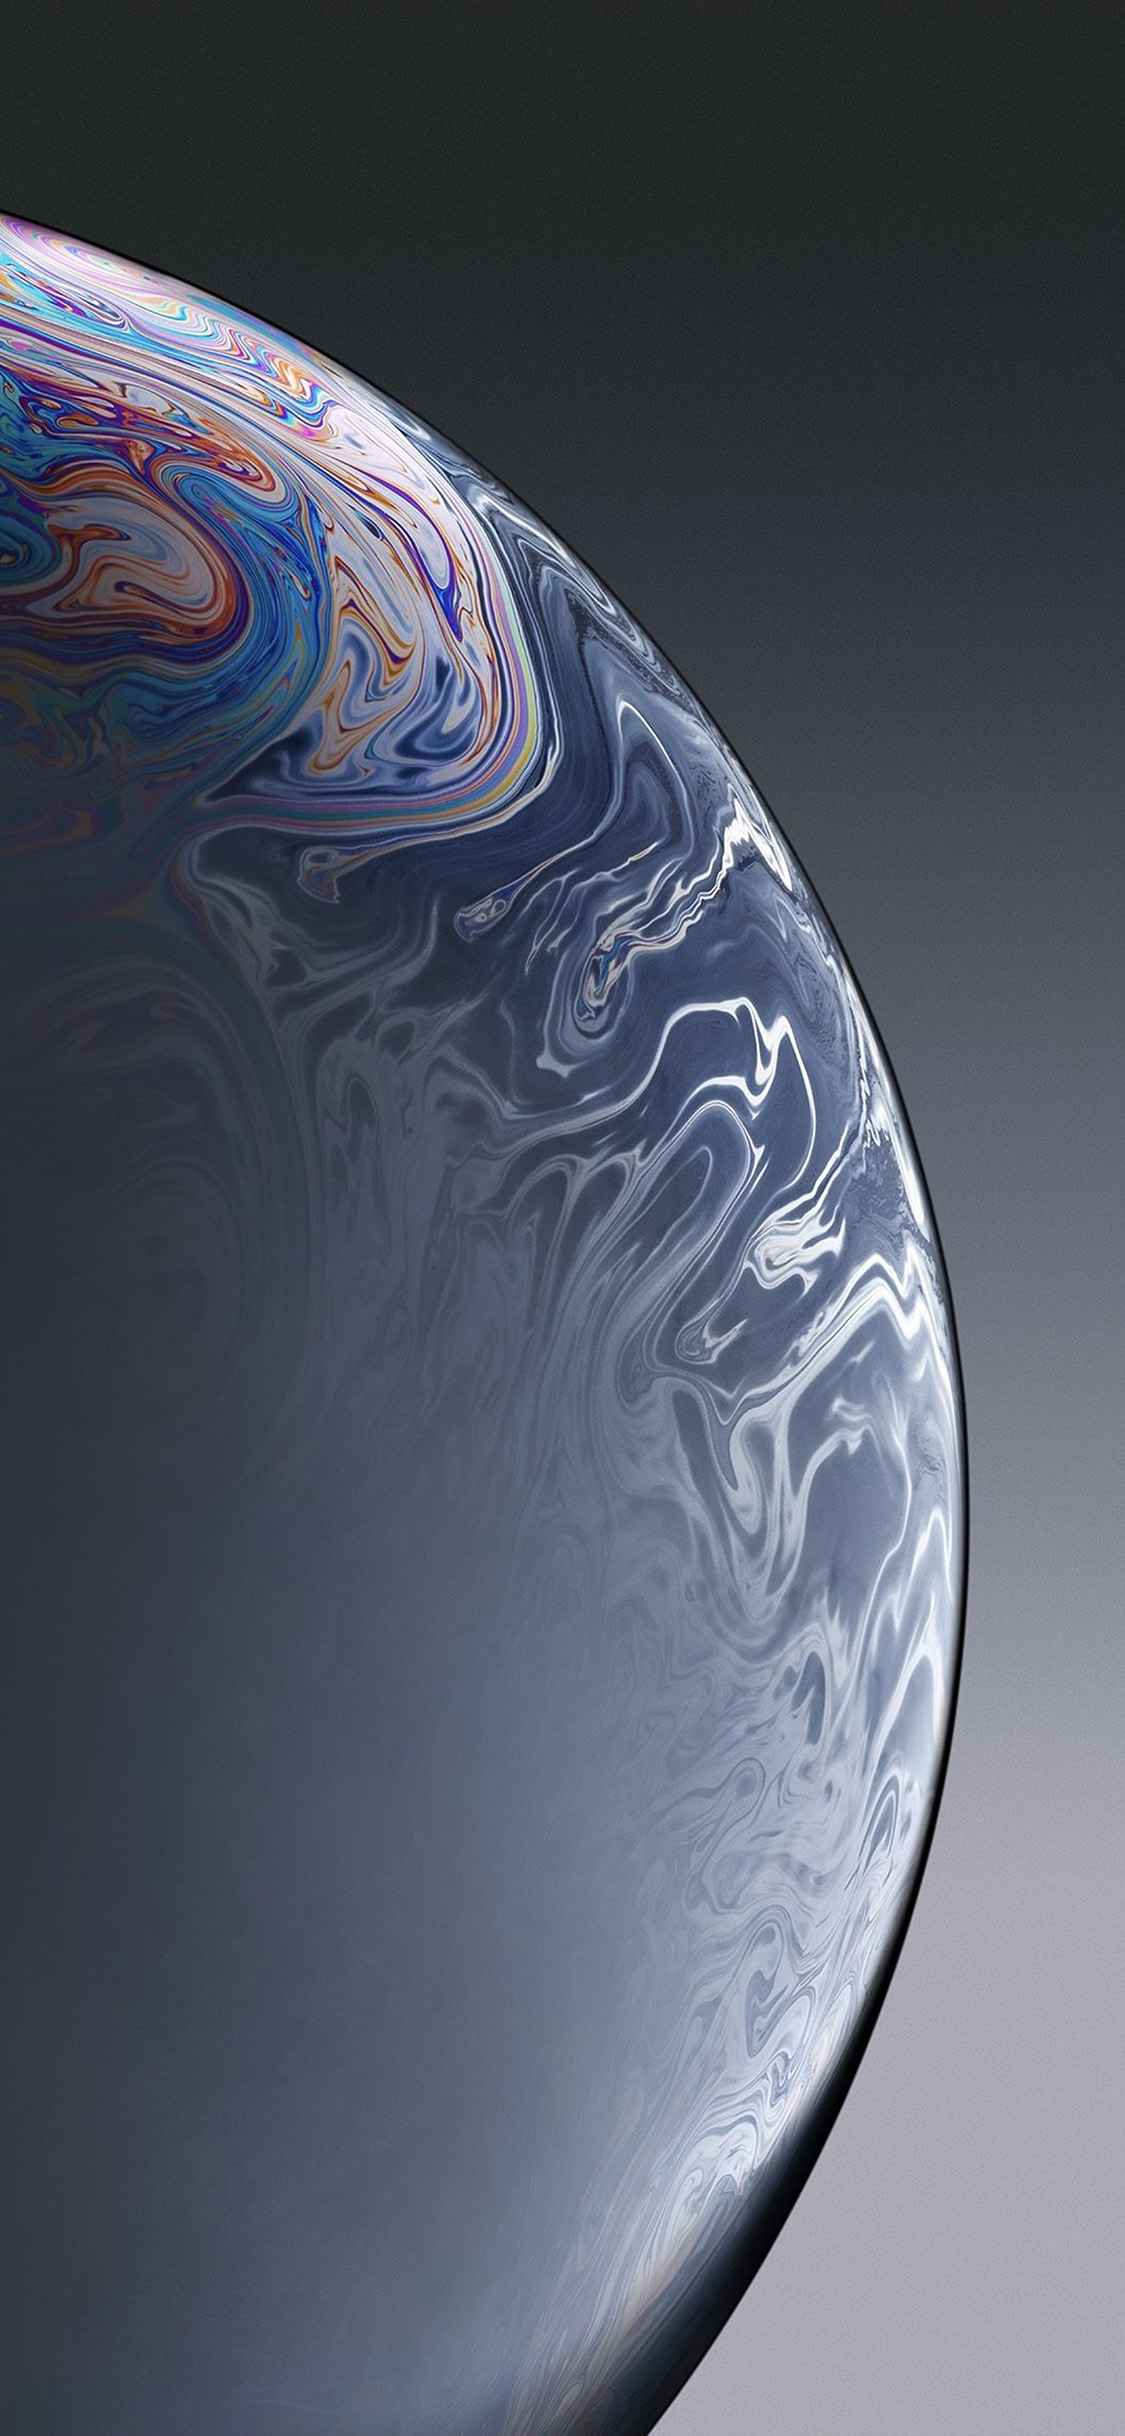 iPhonexpapers.com-Apple-iPhone-wallpaper-bg38-apple-iphone-xs-space-official-art-gray-bubble